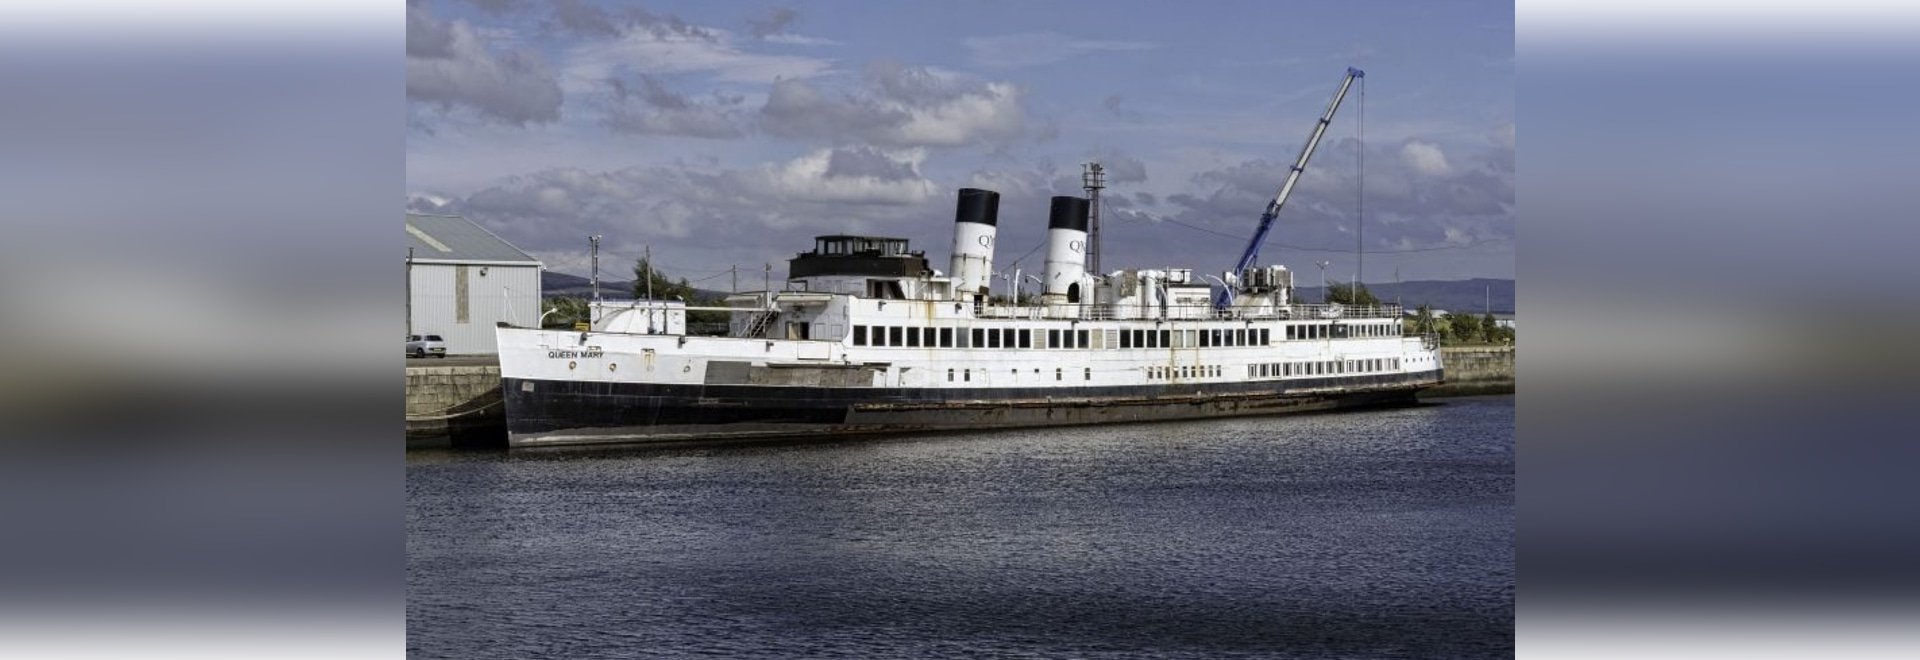 HISTORIC STEAMSHIP TS QUEEN MAY TO BE TOWED TO GLASGOW FOR FIRST TIME SINCE 1977